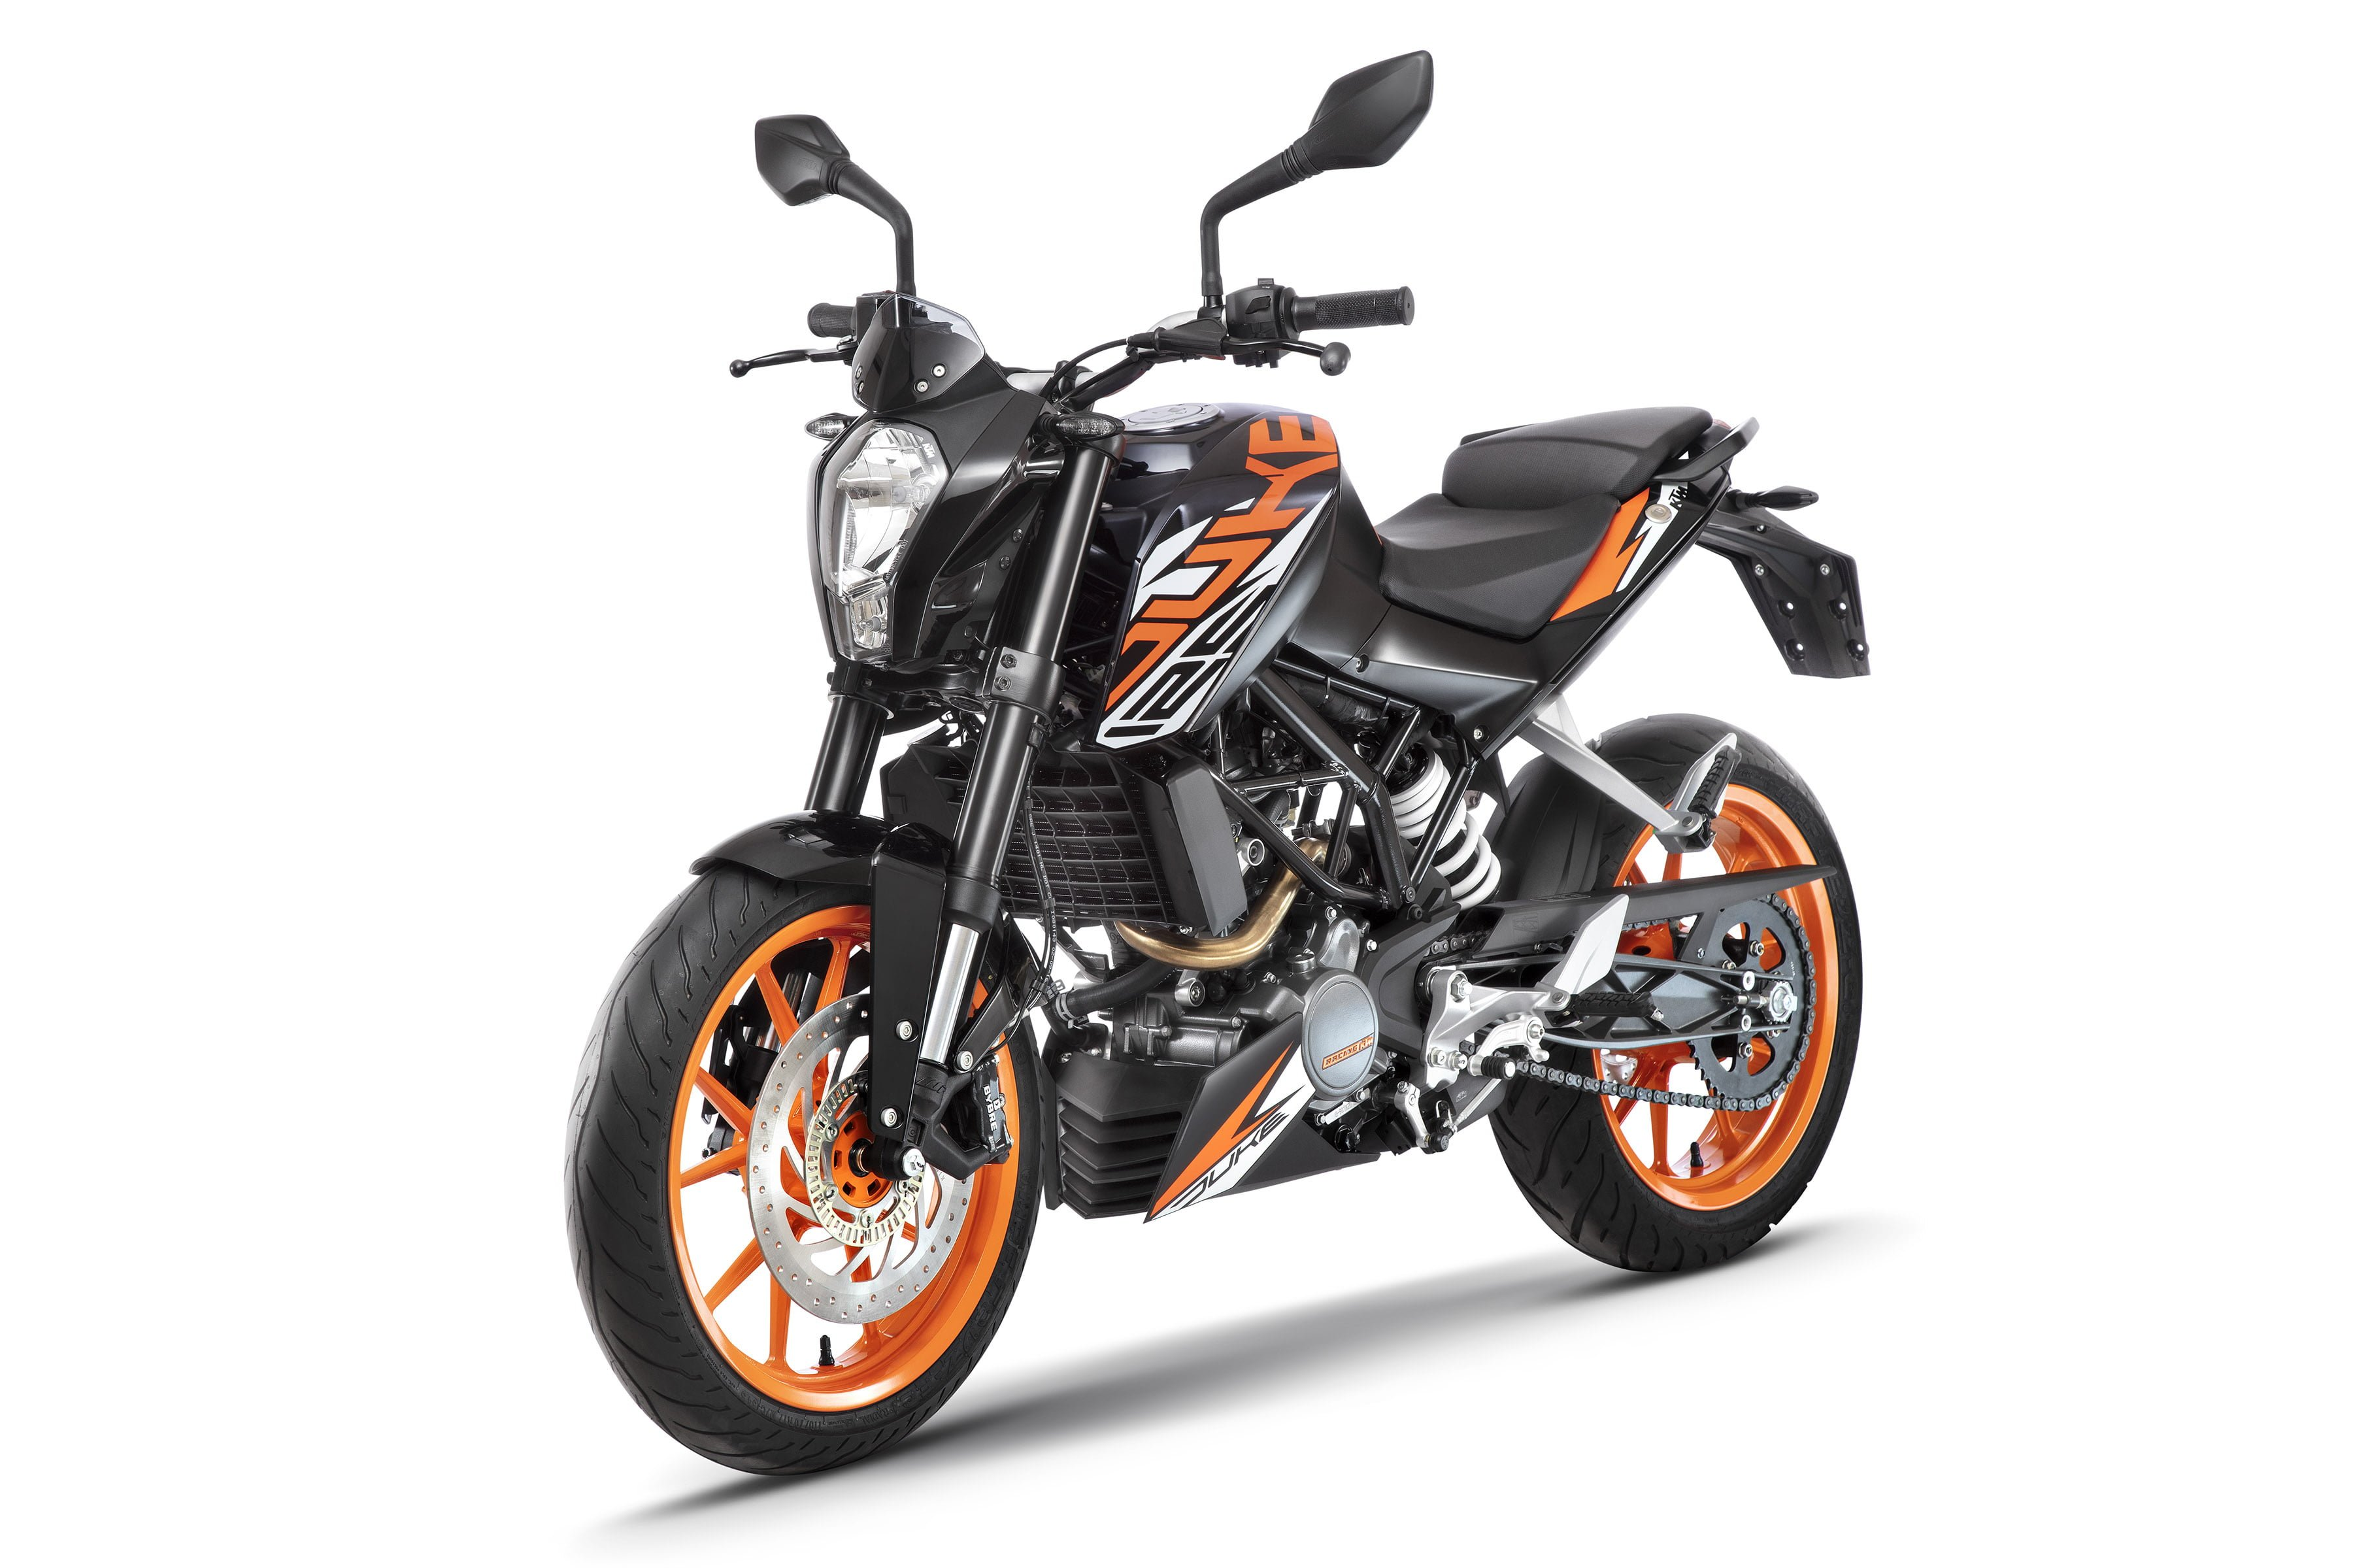 ktm duke 125 abs launched in india prices at inr lakh. Black Bedroom Furniture Sets. Home Design Ideas